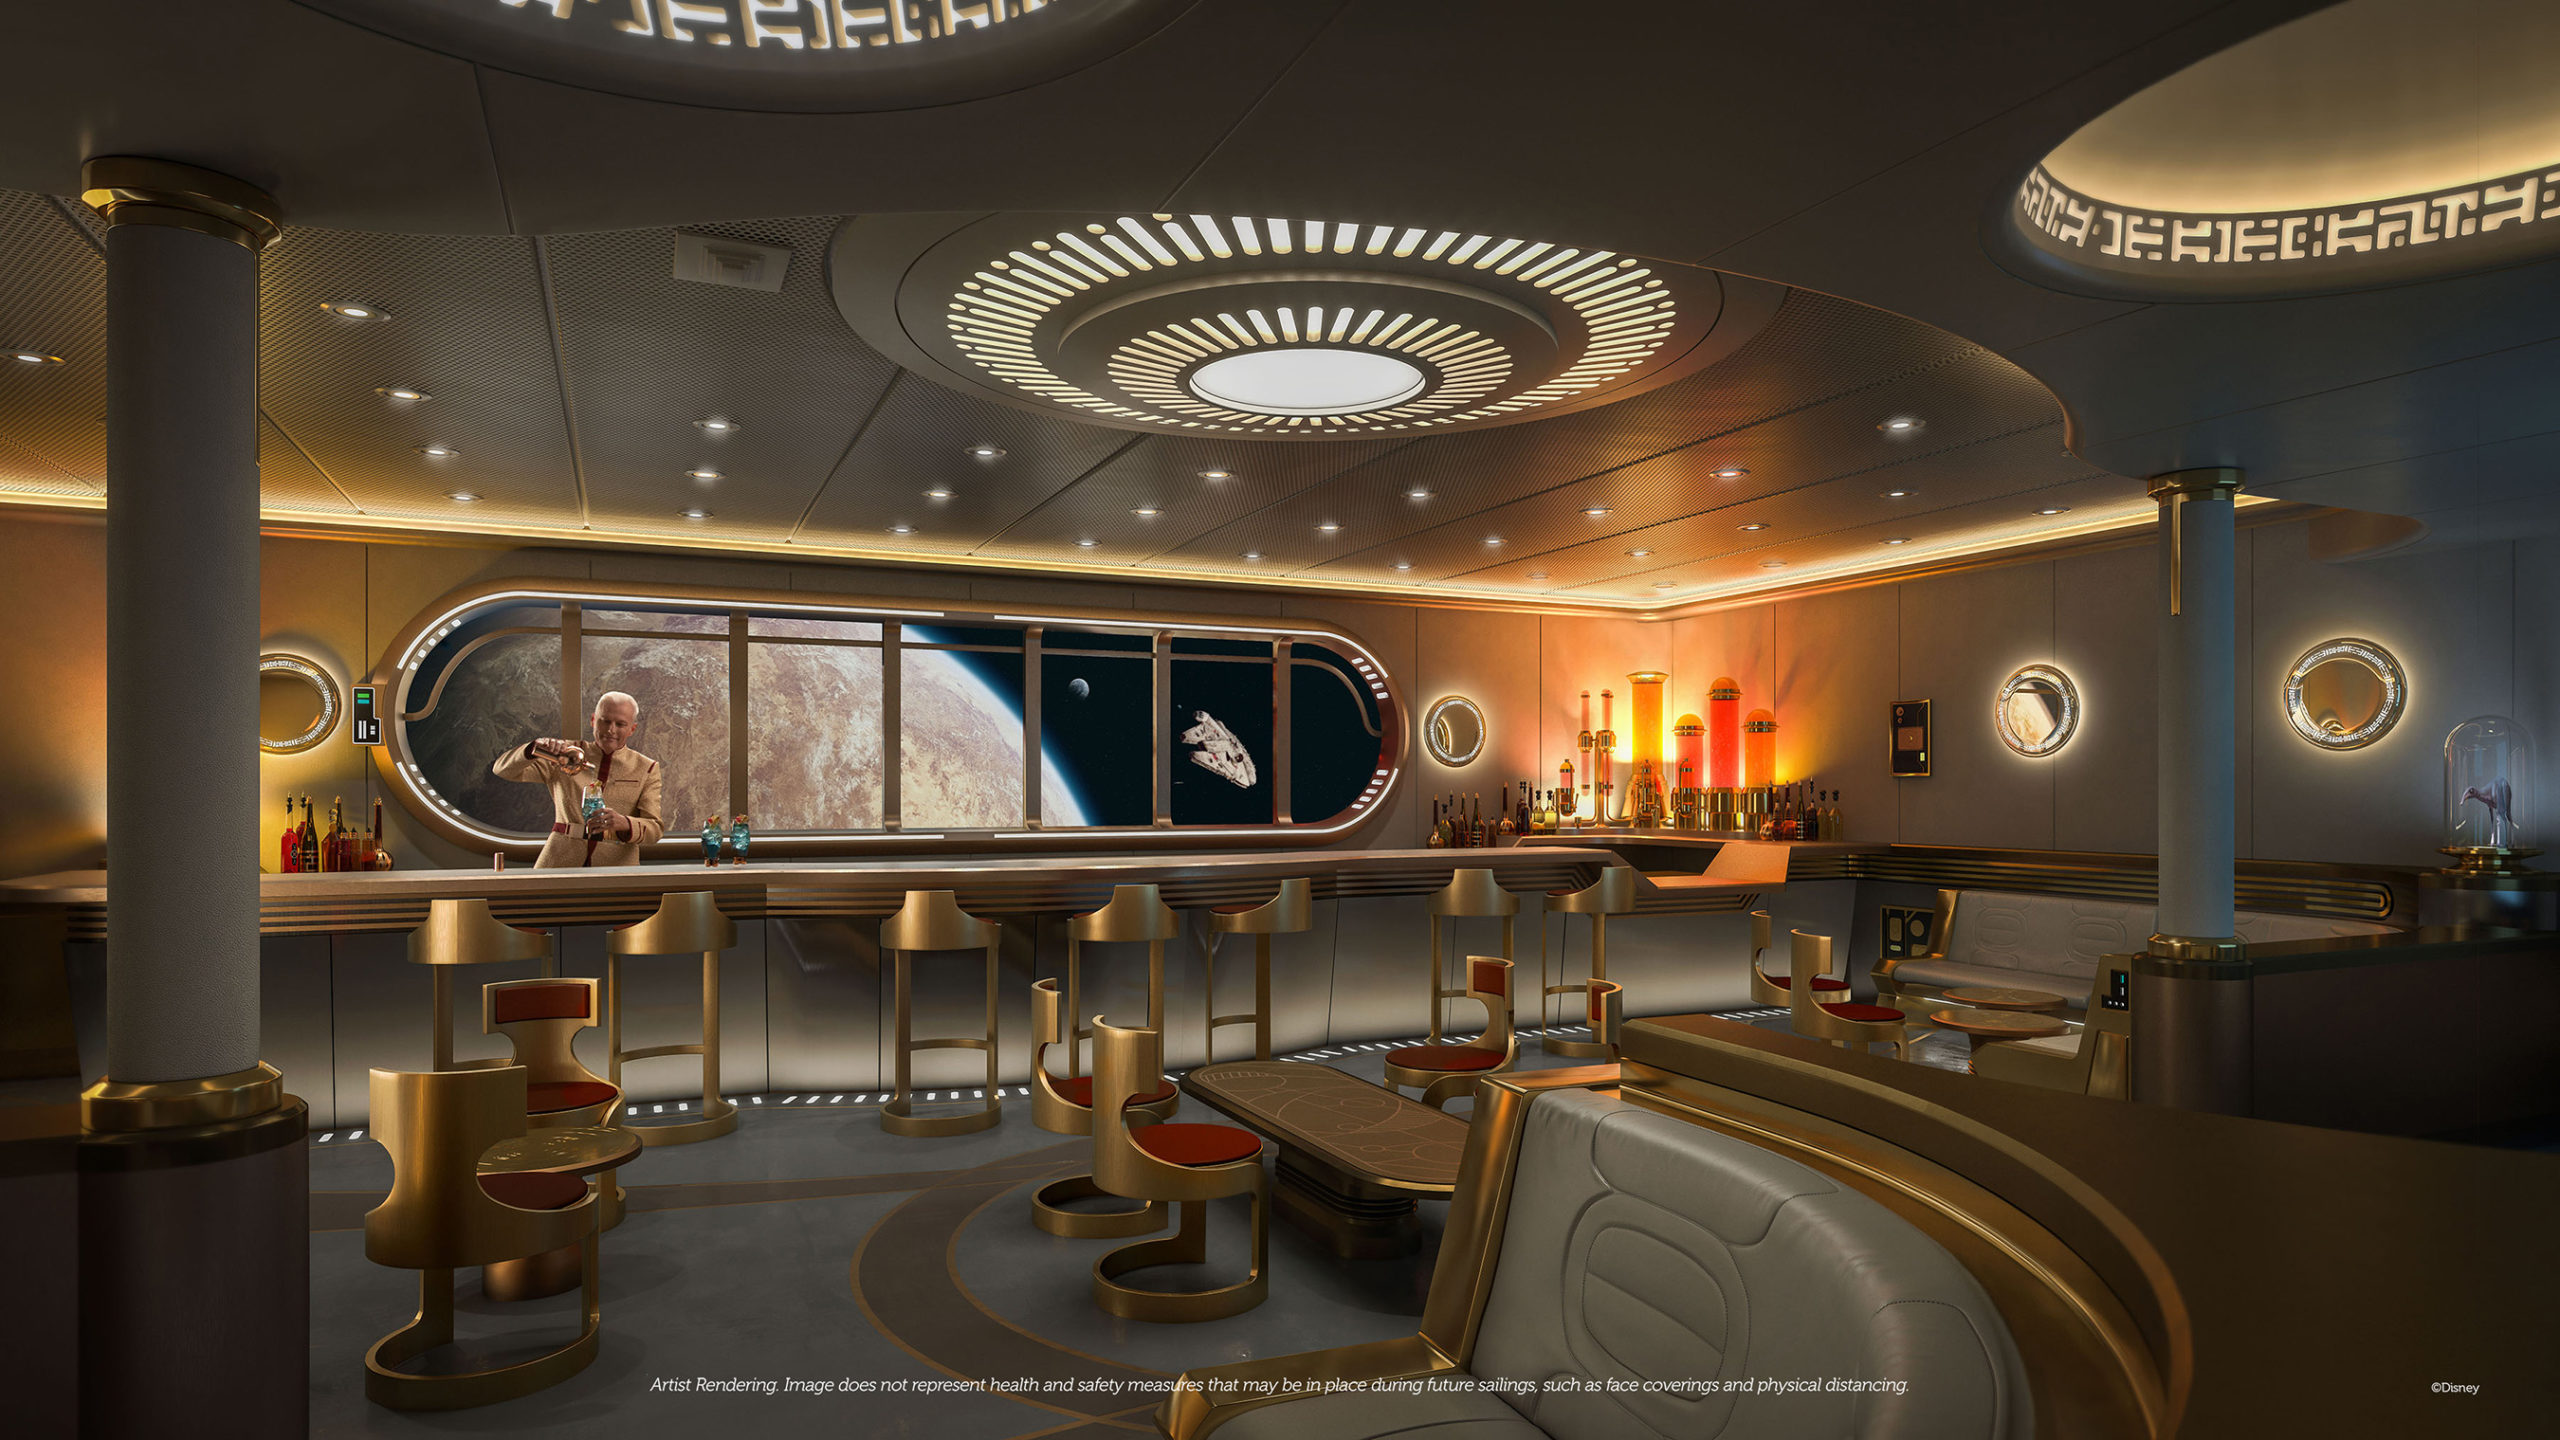 Star Wars Hyperspace Lounge